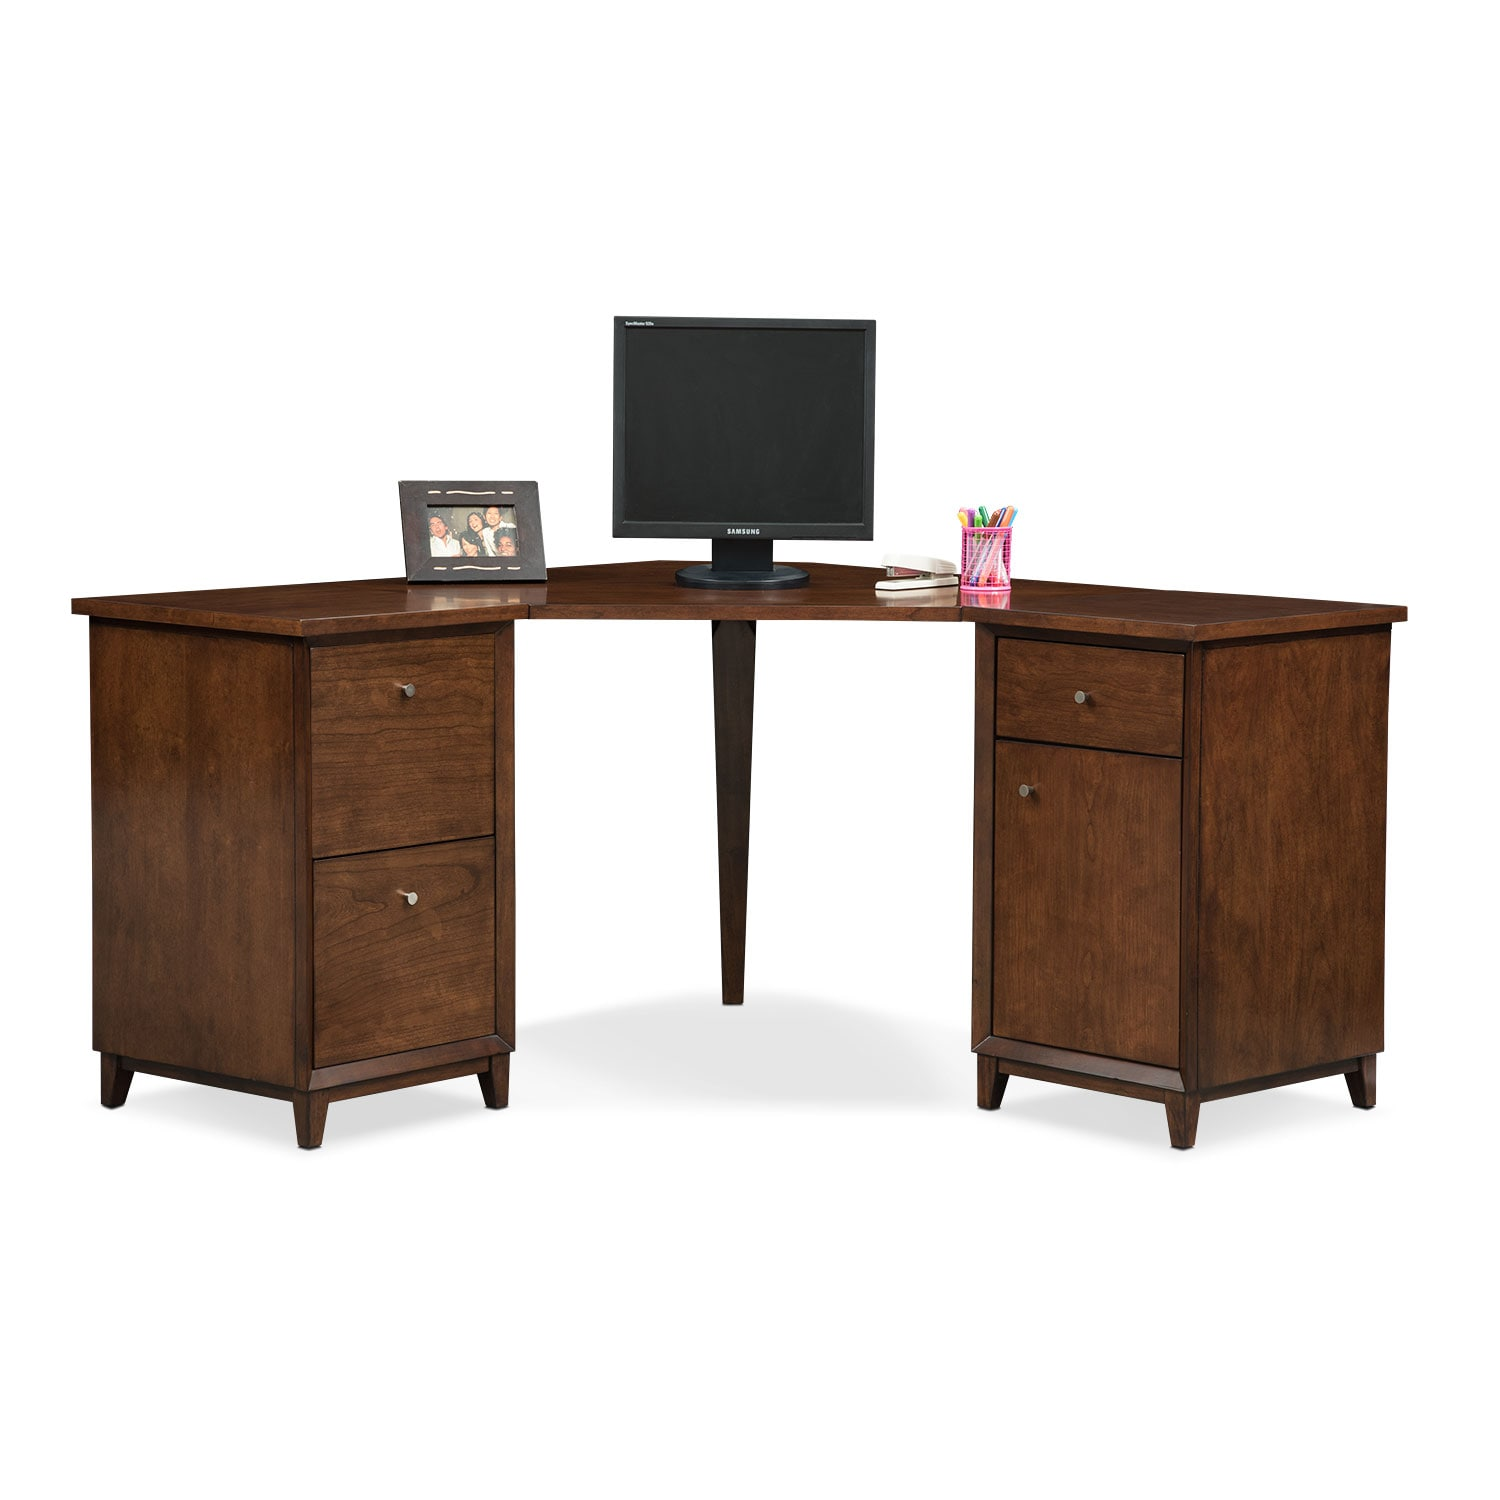 Home Office Furniture - Oslo Corner Desk - Cherry